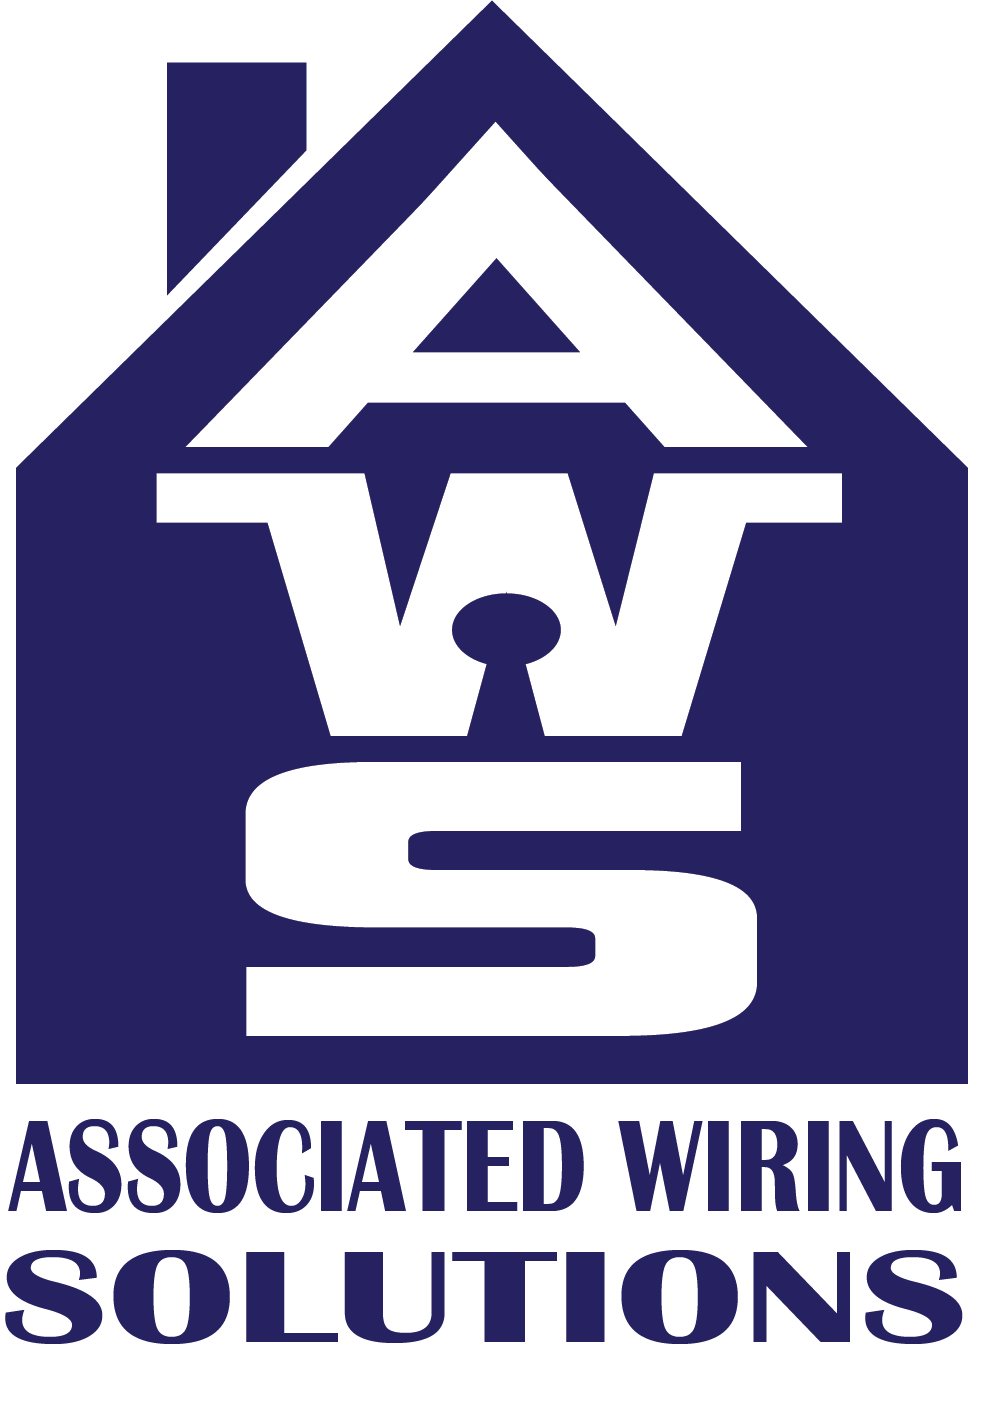 Aws Contact Us Security Contacts Wiring Series Home Specialists